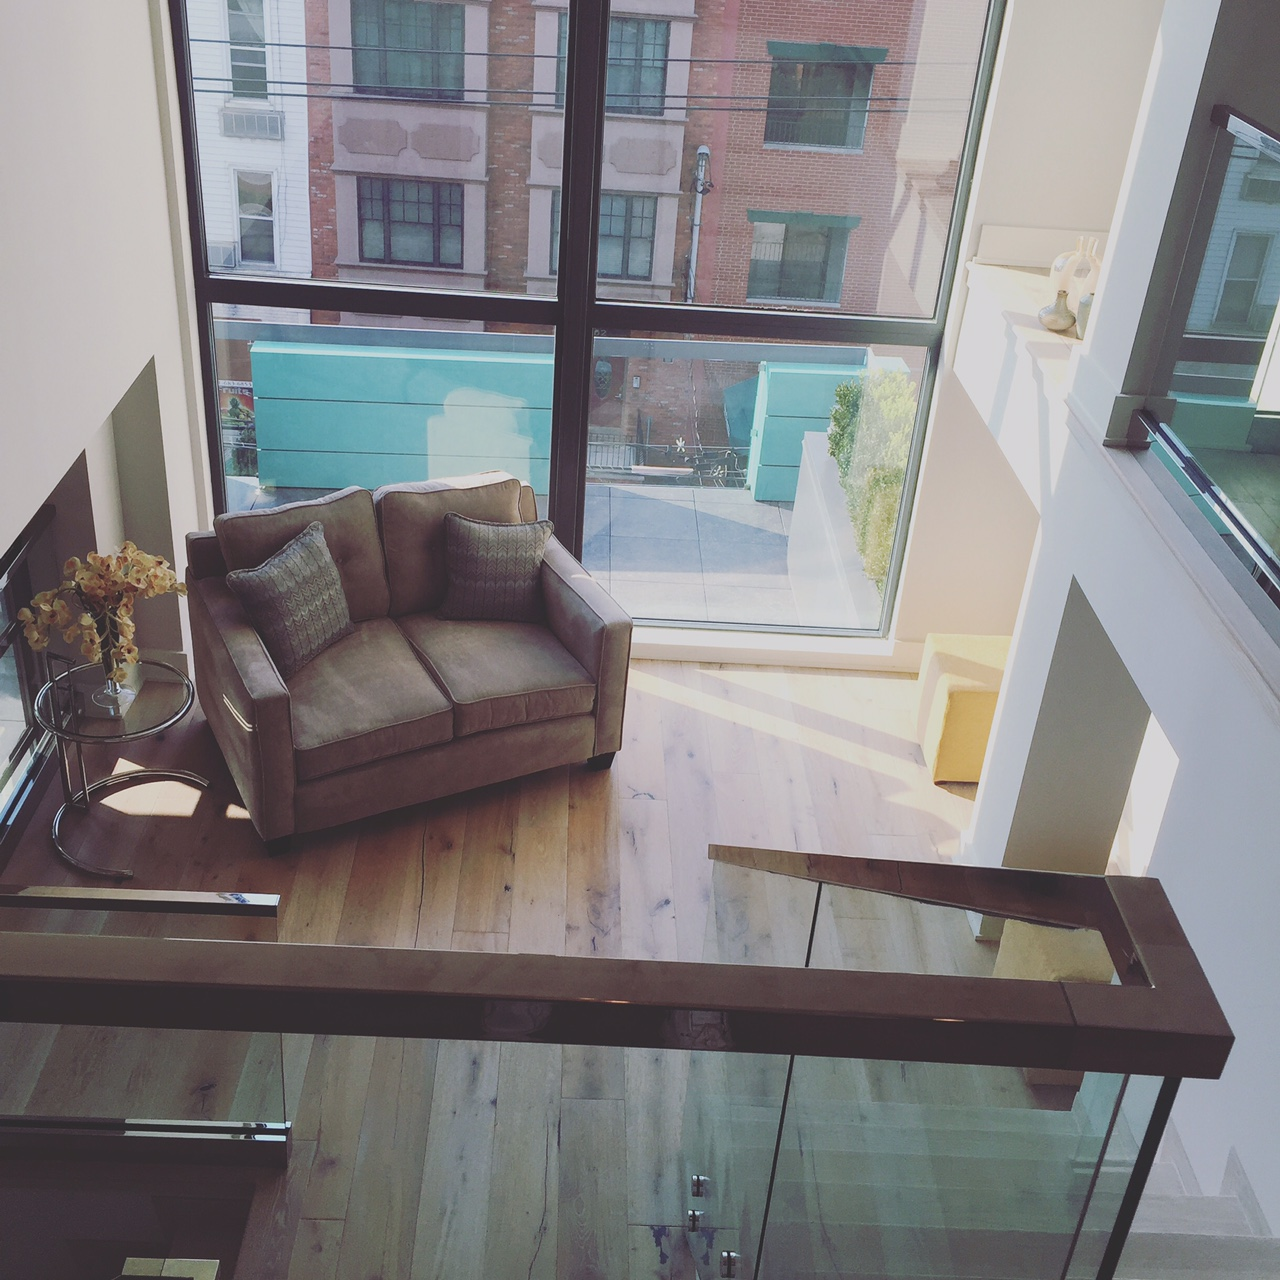 Here's What Eli Manning's Penthouse Looks Like